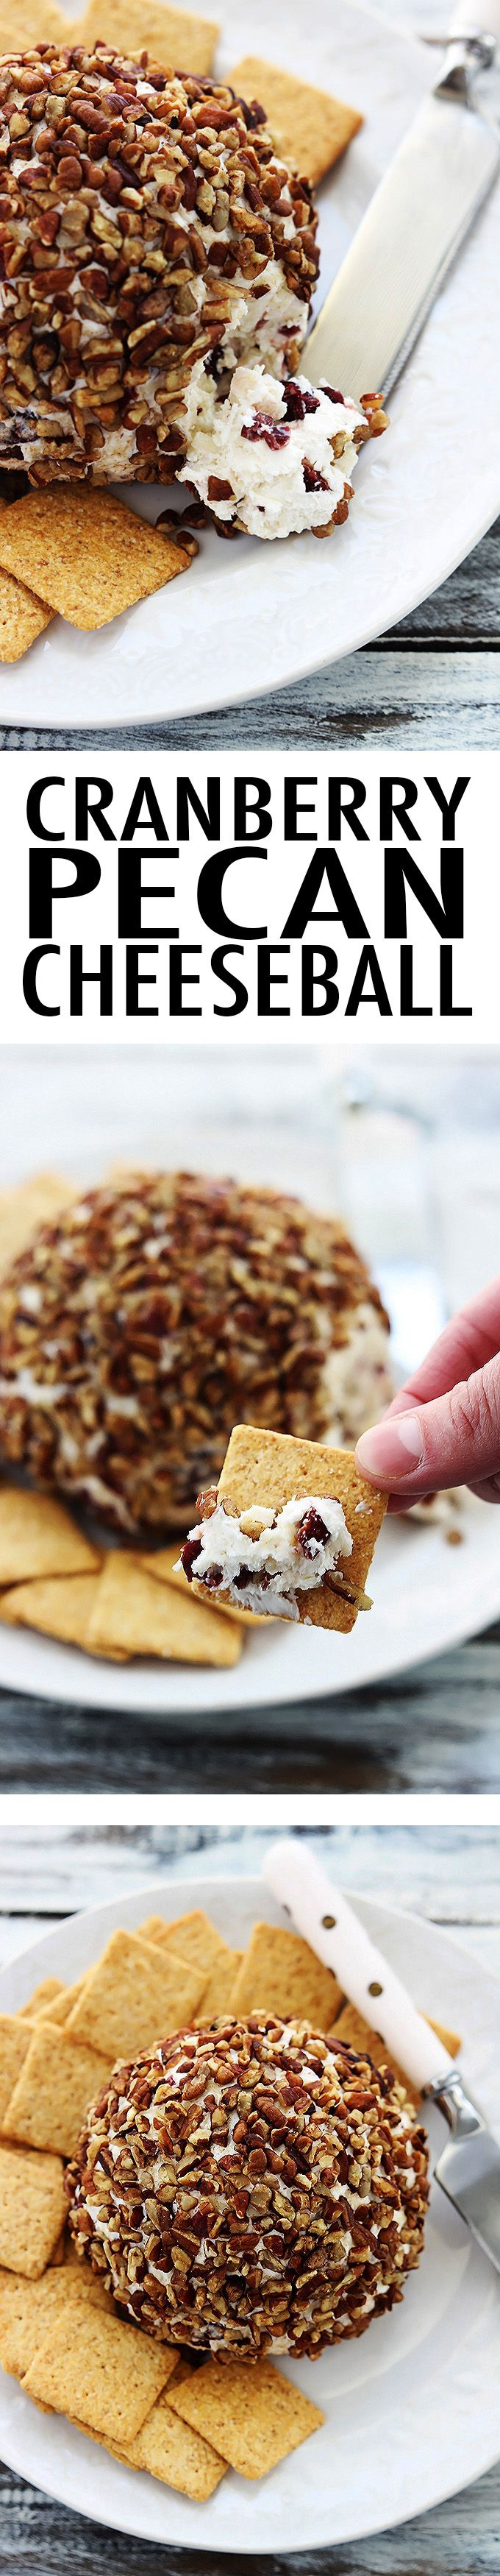 Cream cheese and sharp cheddar cranberry pecan cheeseball! This classic holiday appetizer is always a hit and so easy to make!